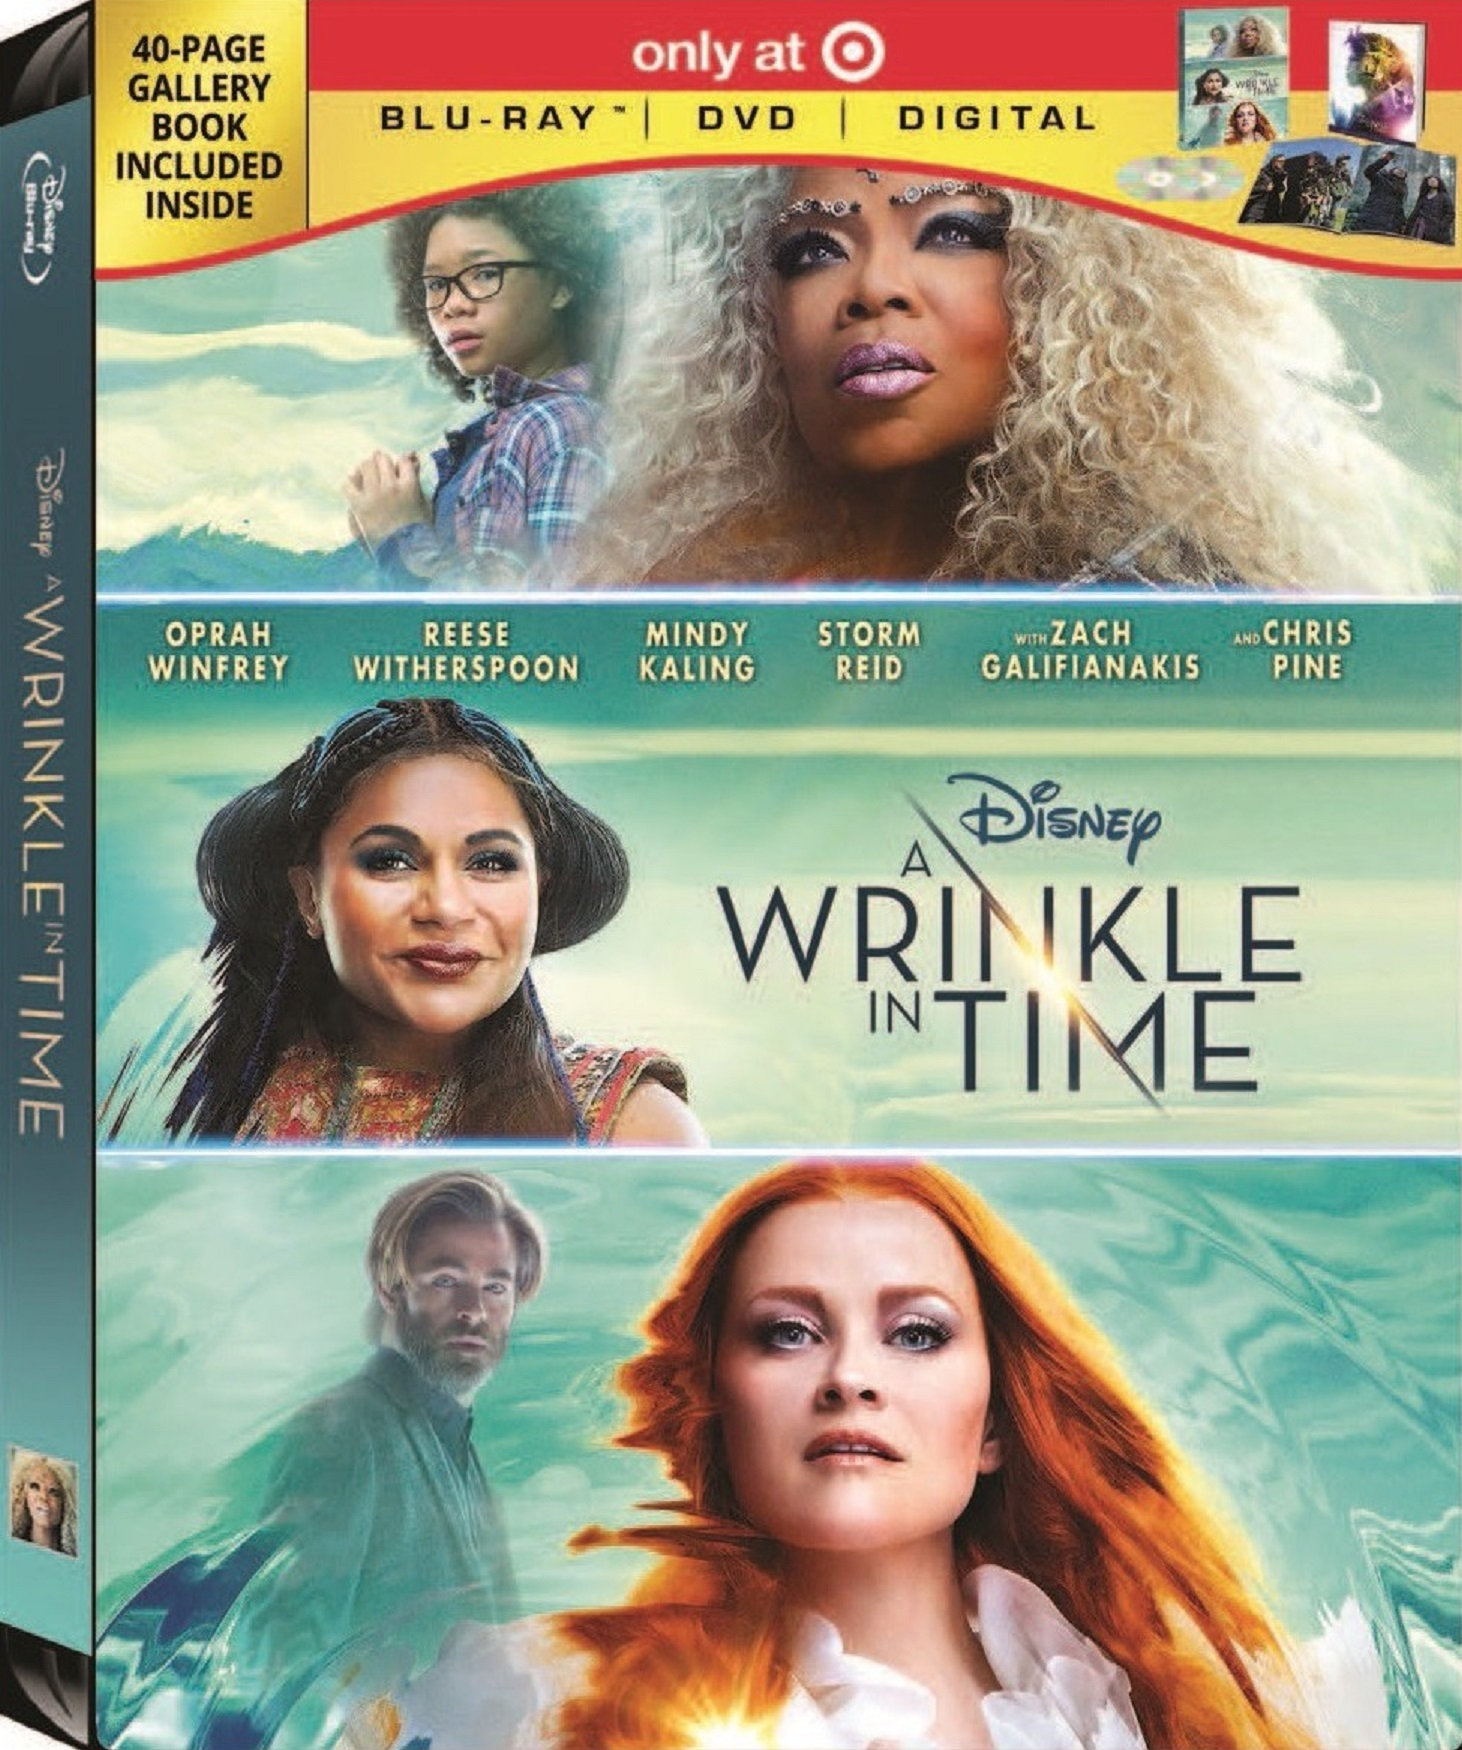 A Wrinkle in Time (2018) poster image